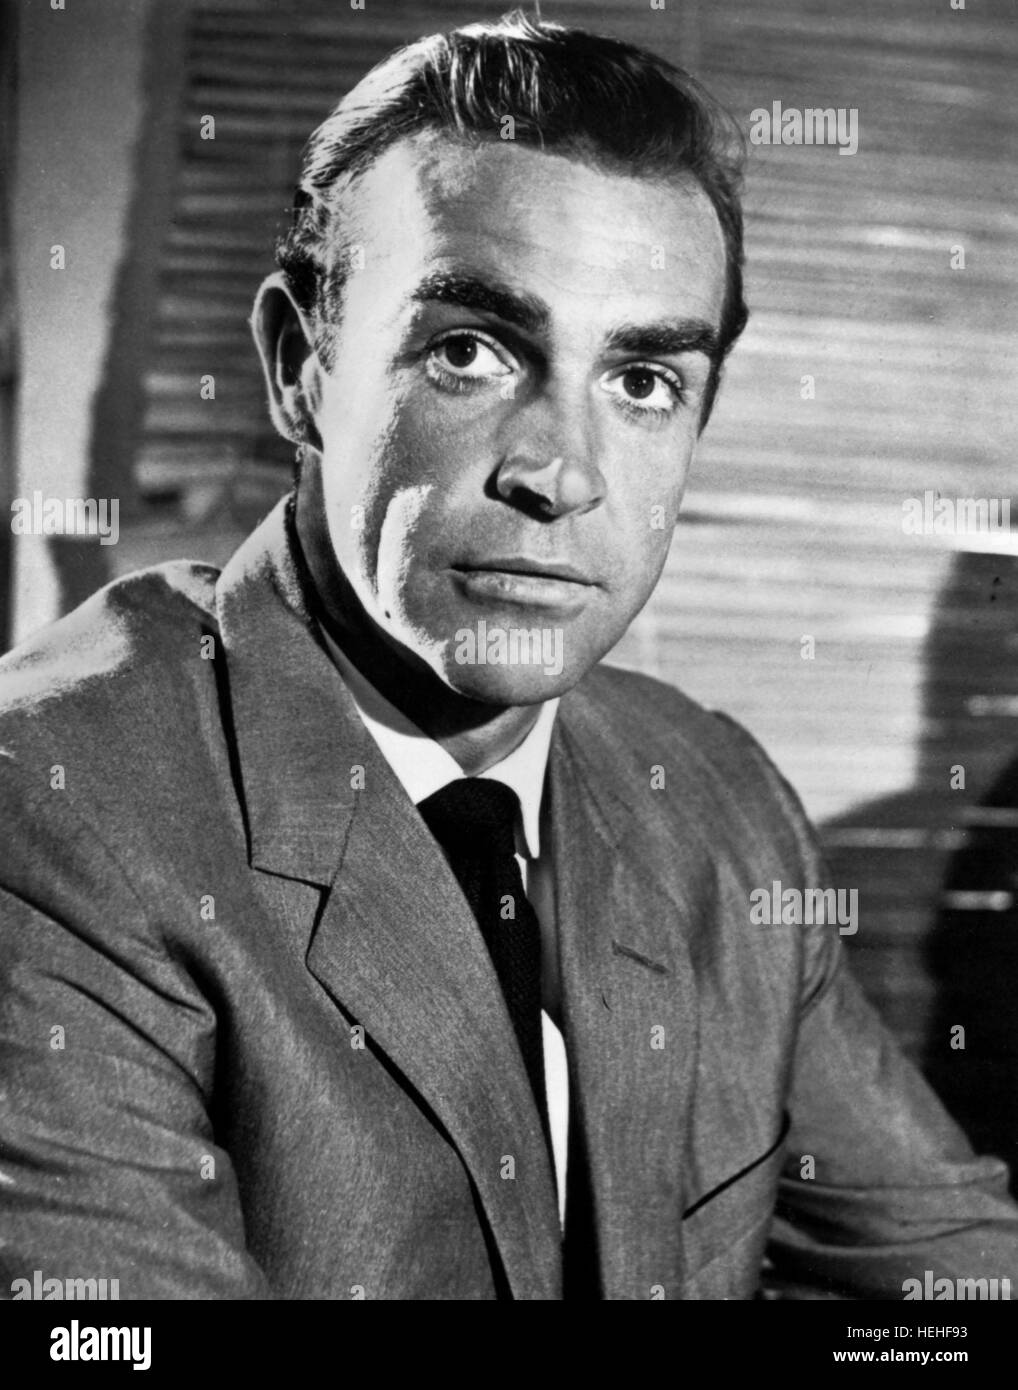 James Bond Sean Connery Dr No High Resolution Stock Photography And Images Alamy